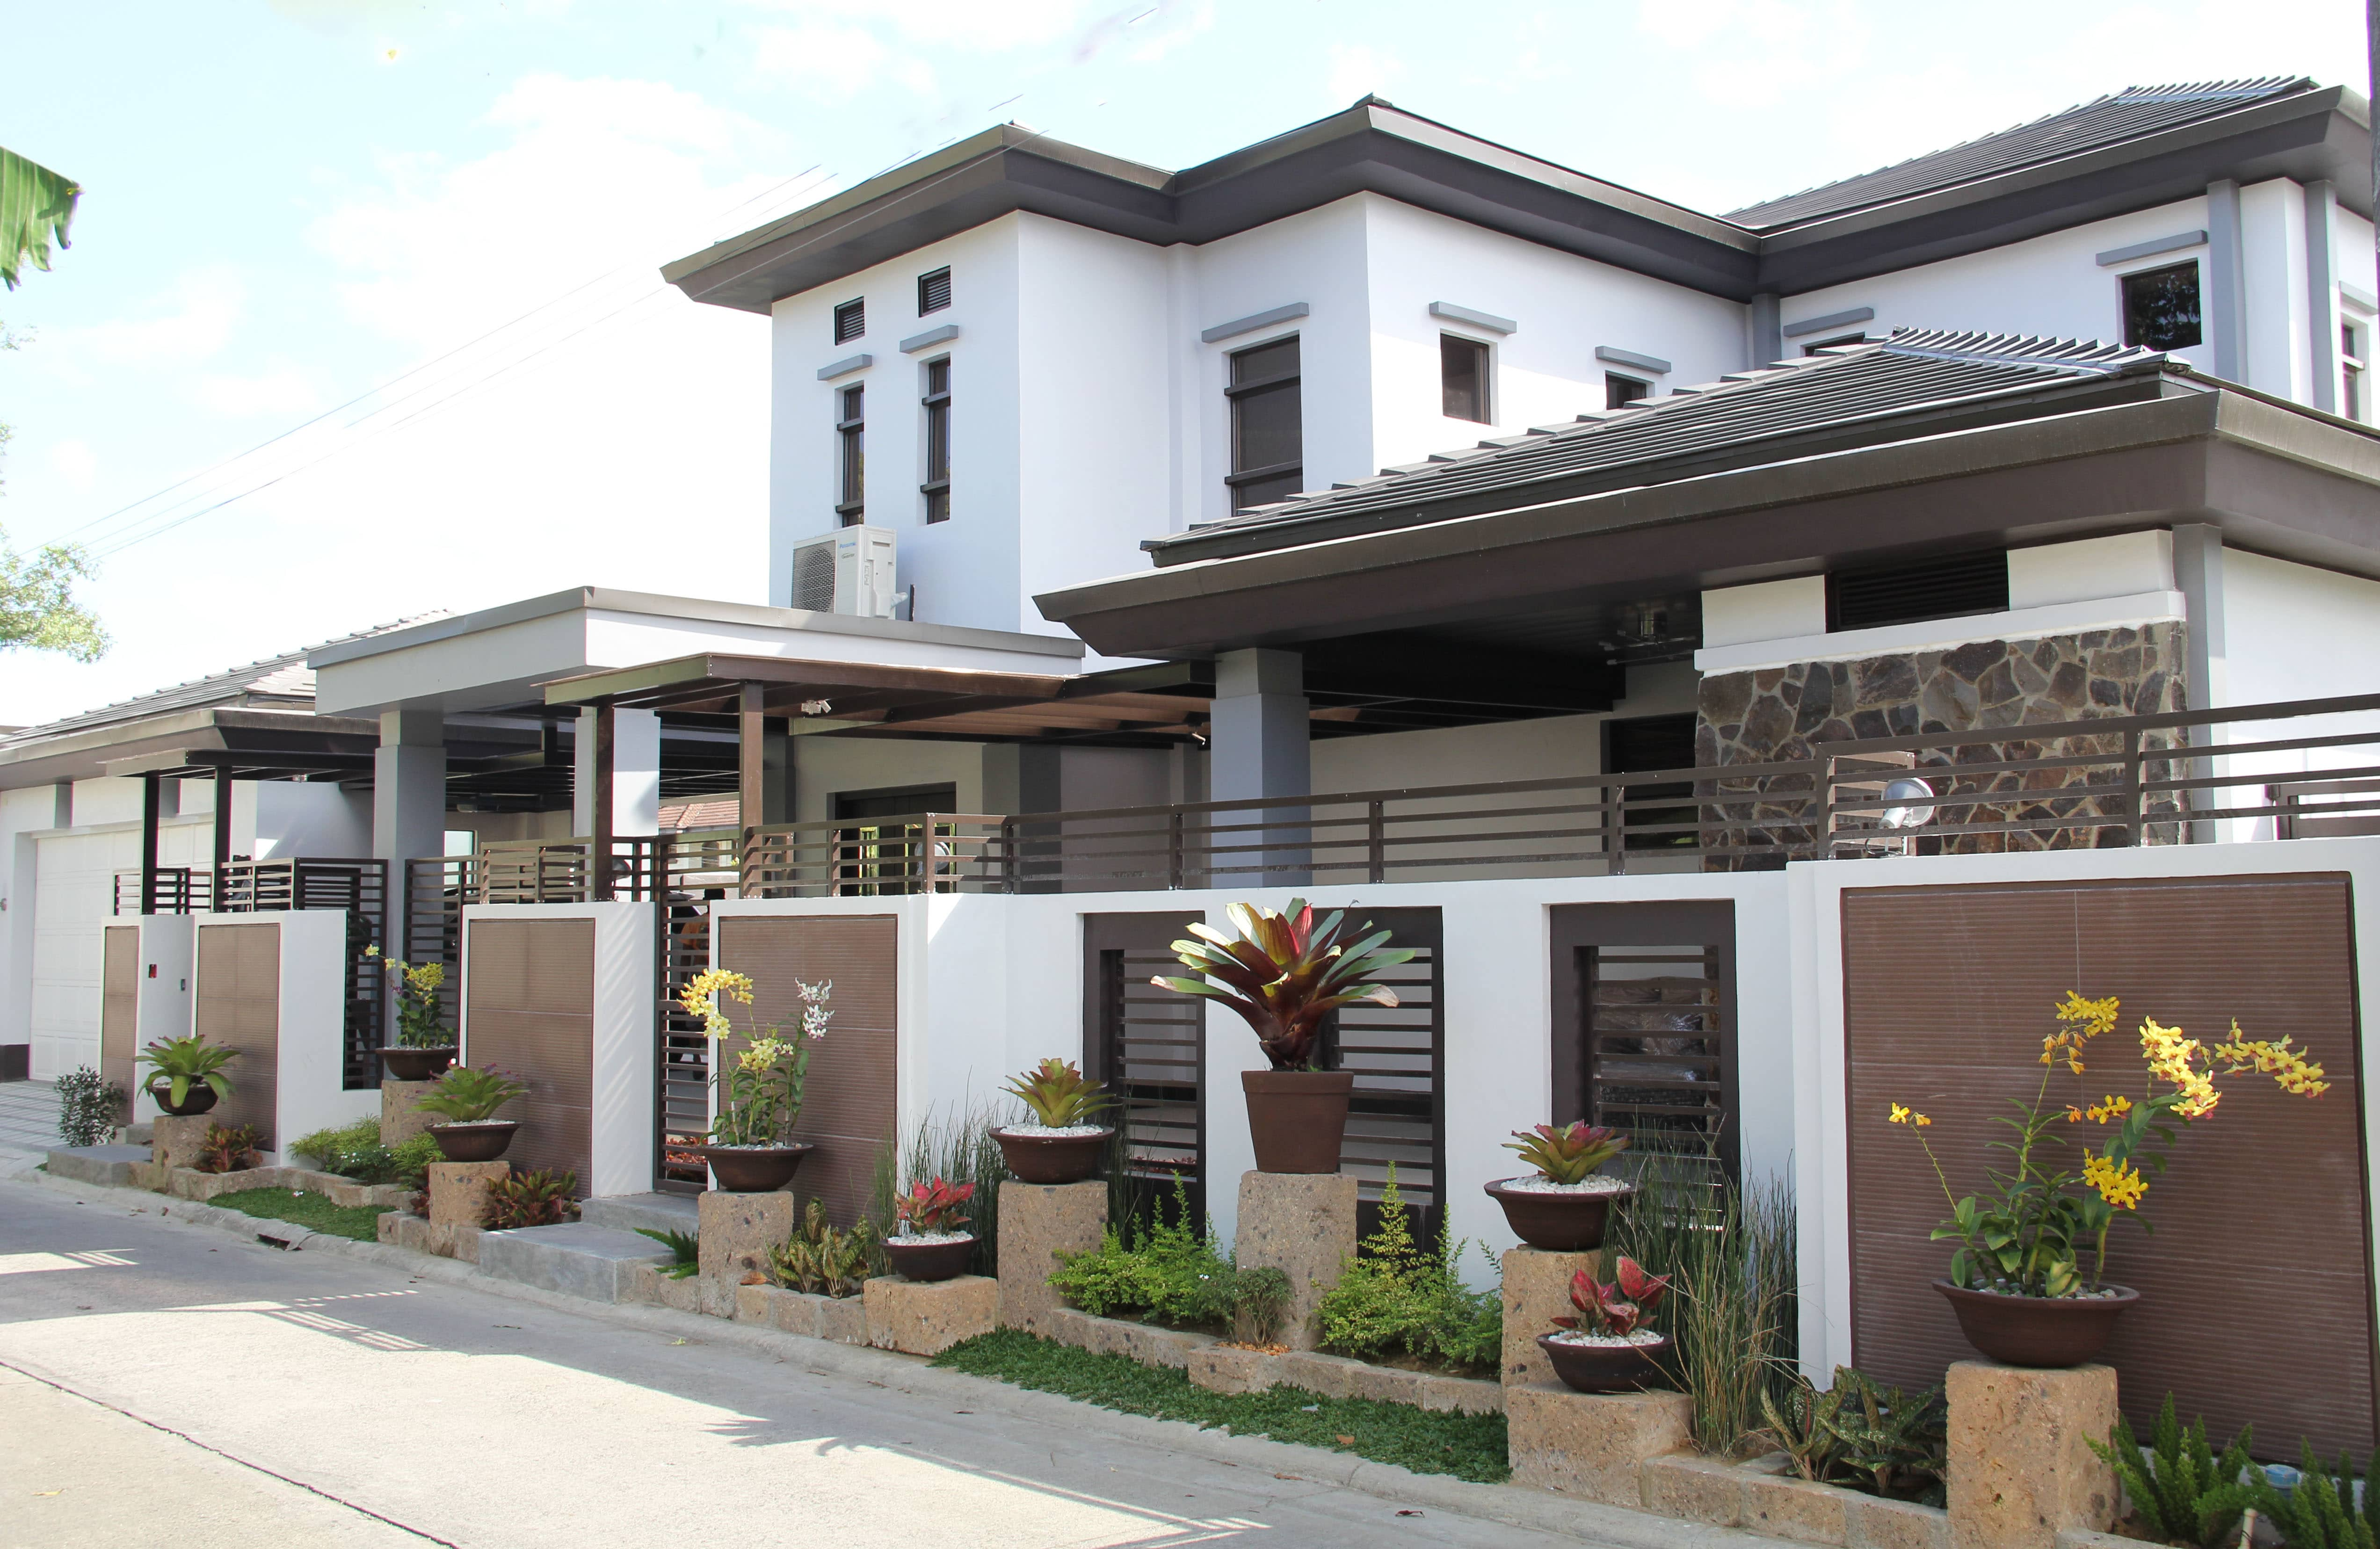 Top five house designs in the philippines top design for Best house designs in the philippines